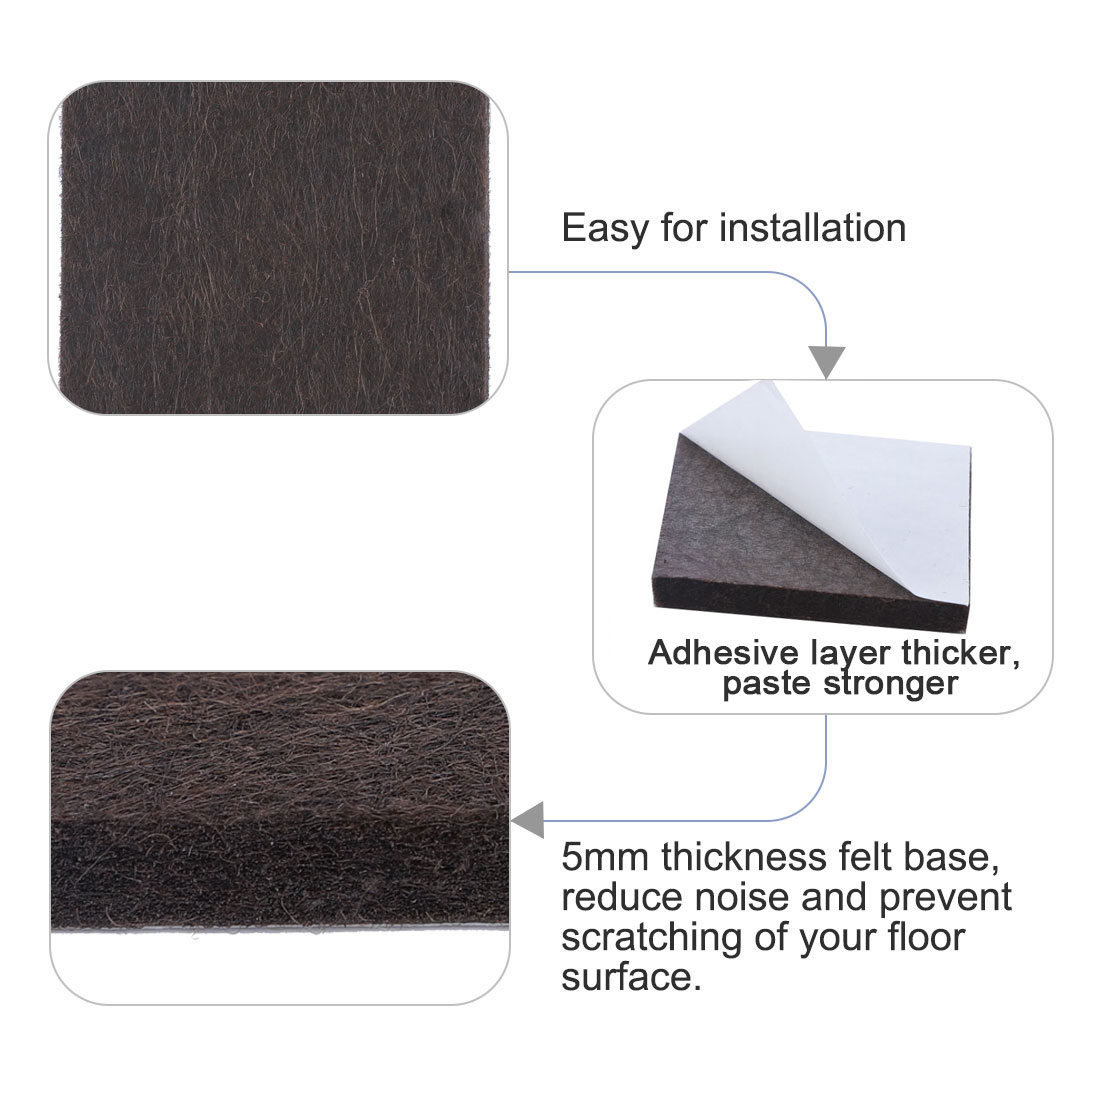 "Felt Furniture Pads Square 7/8"" Self Adhesive Anti-scratch Floor Protector 40pcs - image 4 of 7"